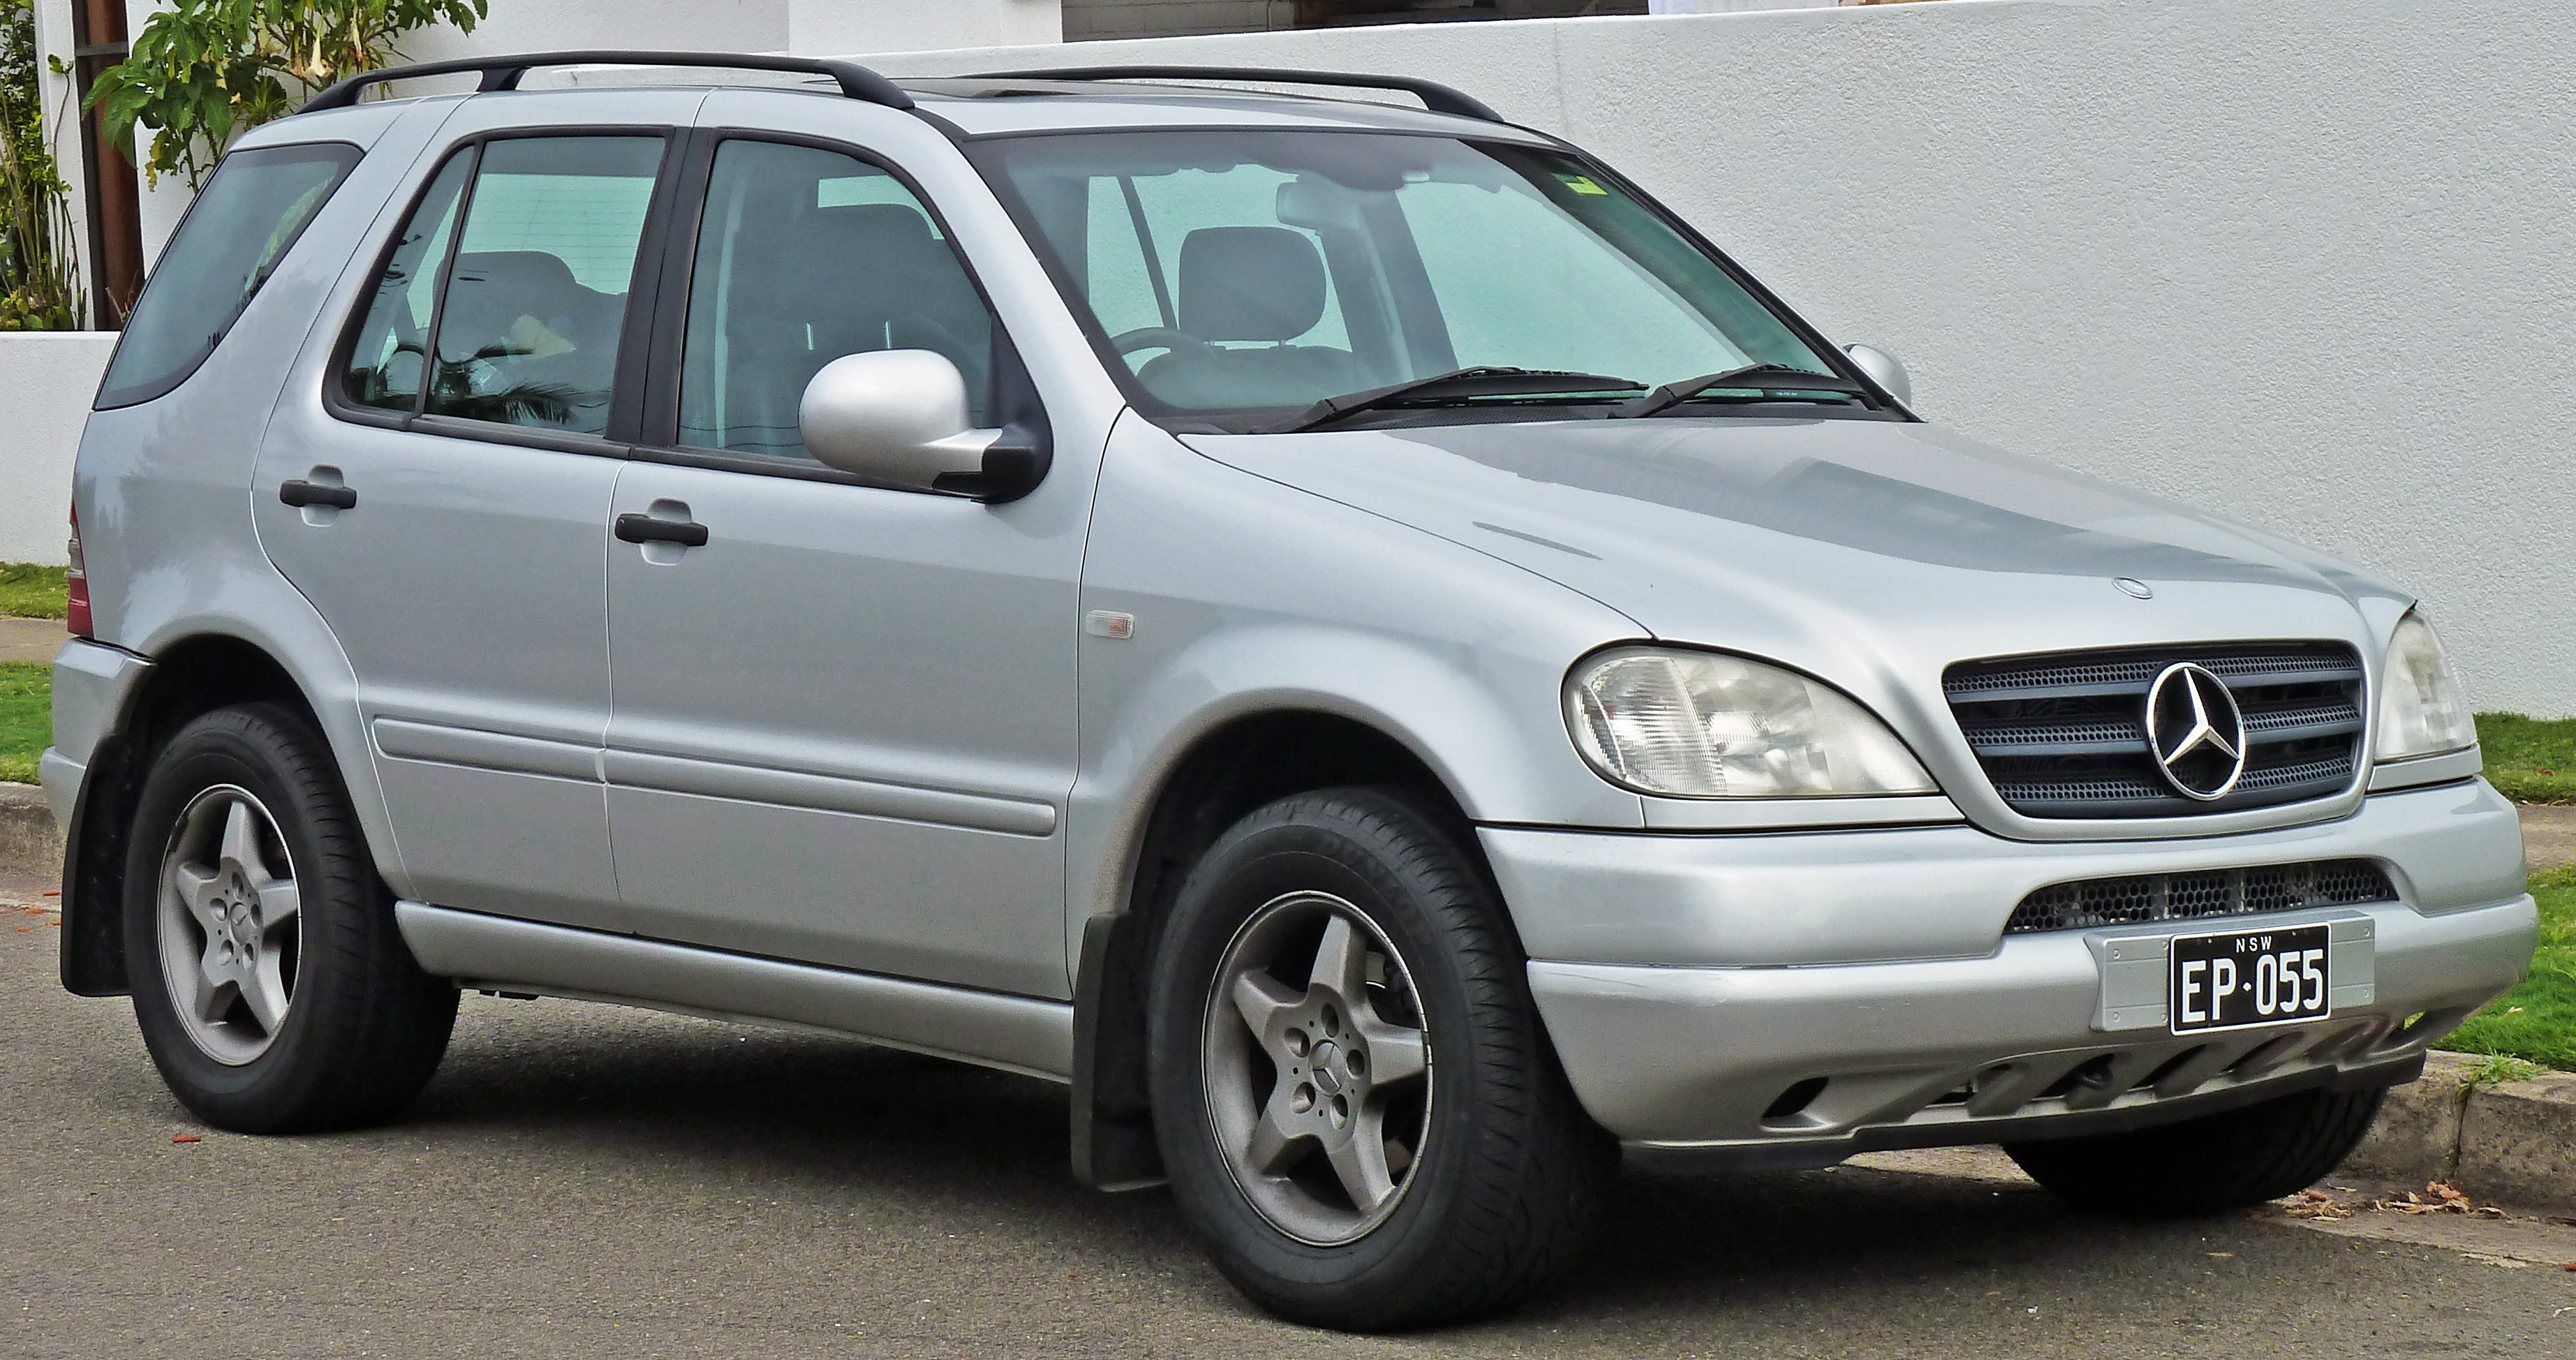 Mercedes-Benz M-klasse I (W163) 1997 - 2001 SUV 5 door #2